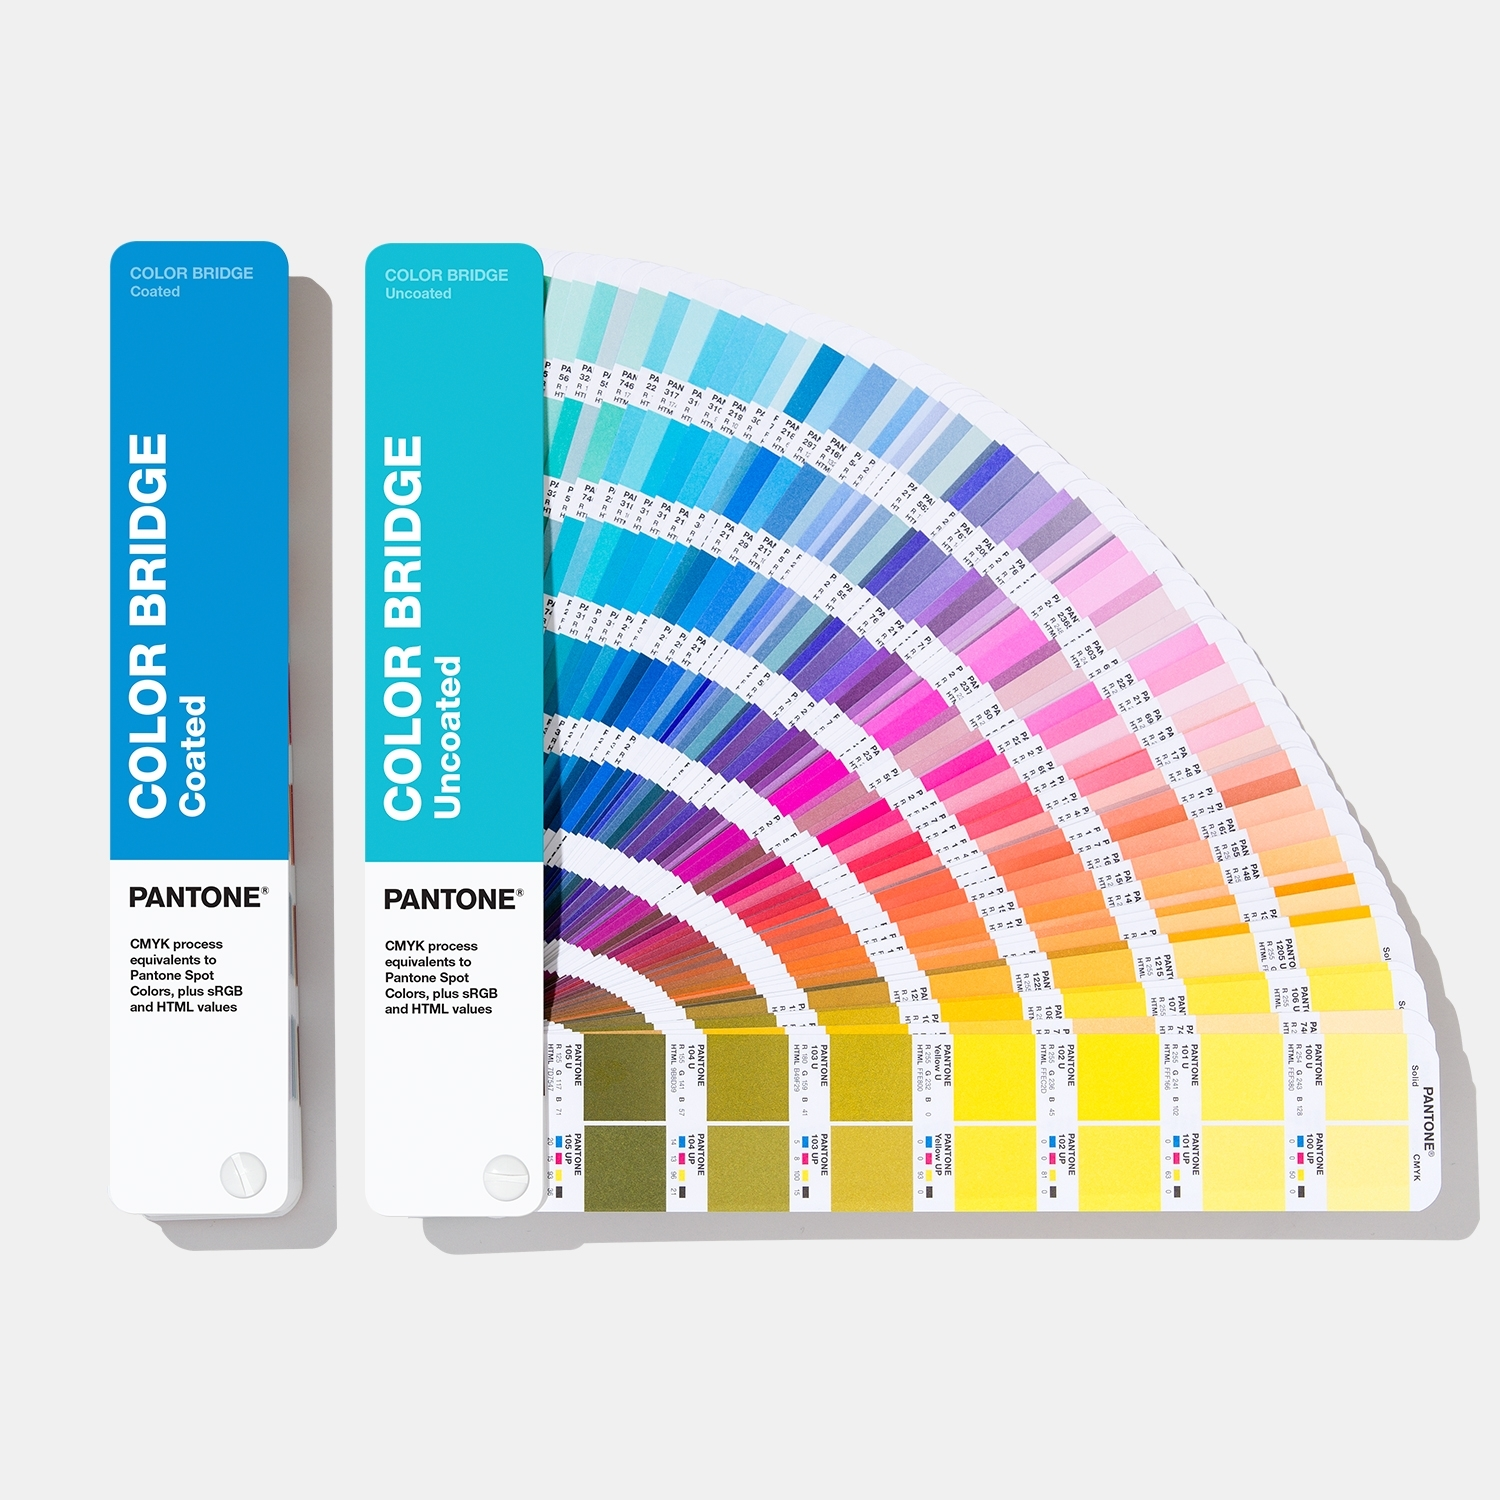 Pantone Color Bridge Guide | Coated Translate Pantone Colors into CMYK, HTML, RGB - View 2